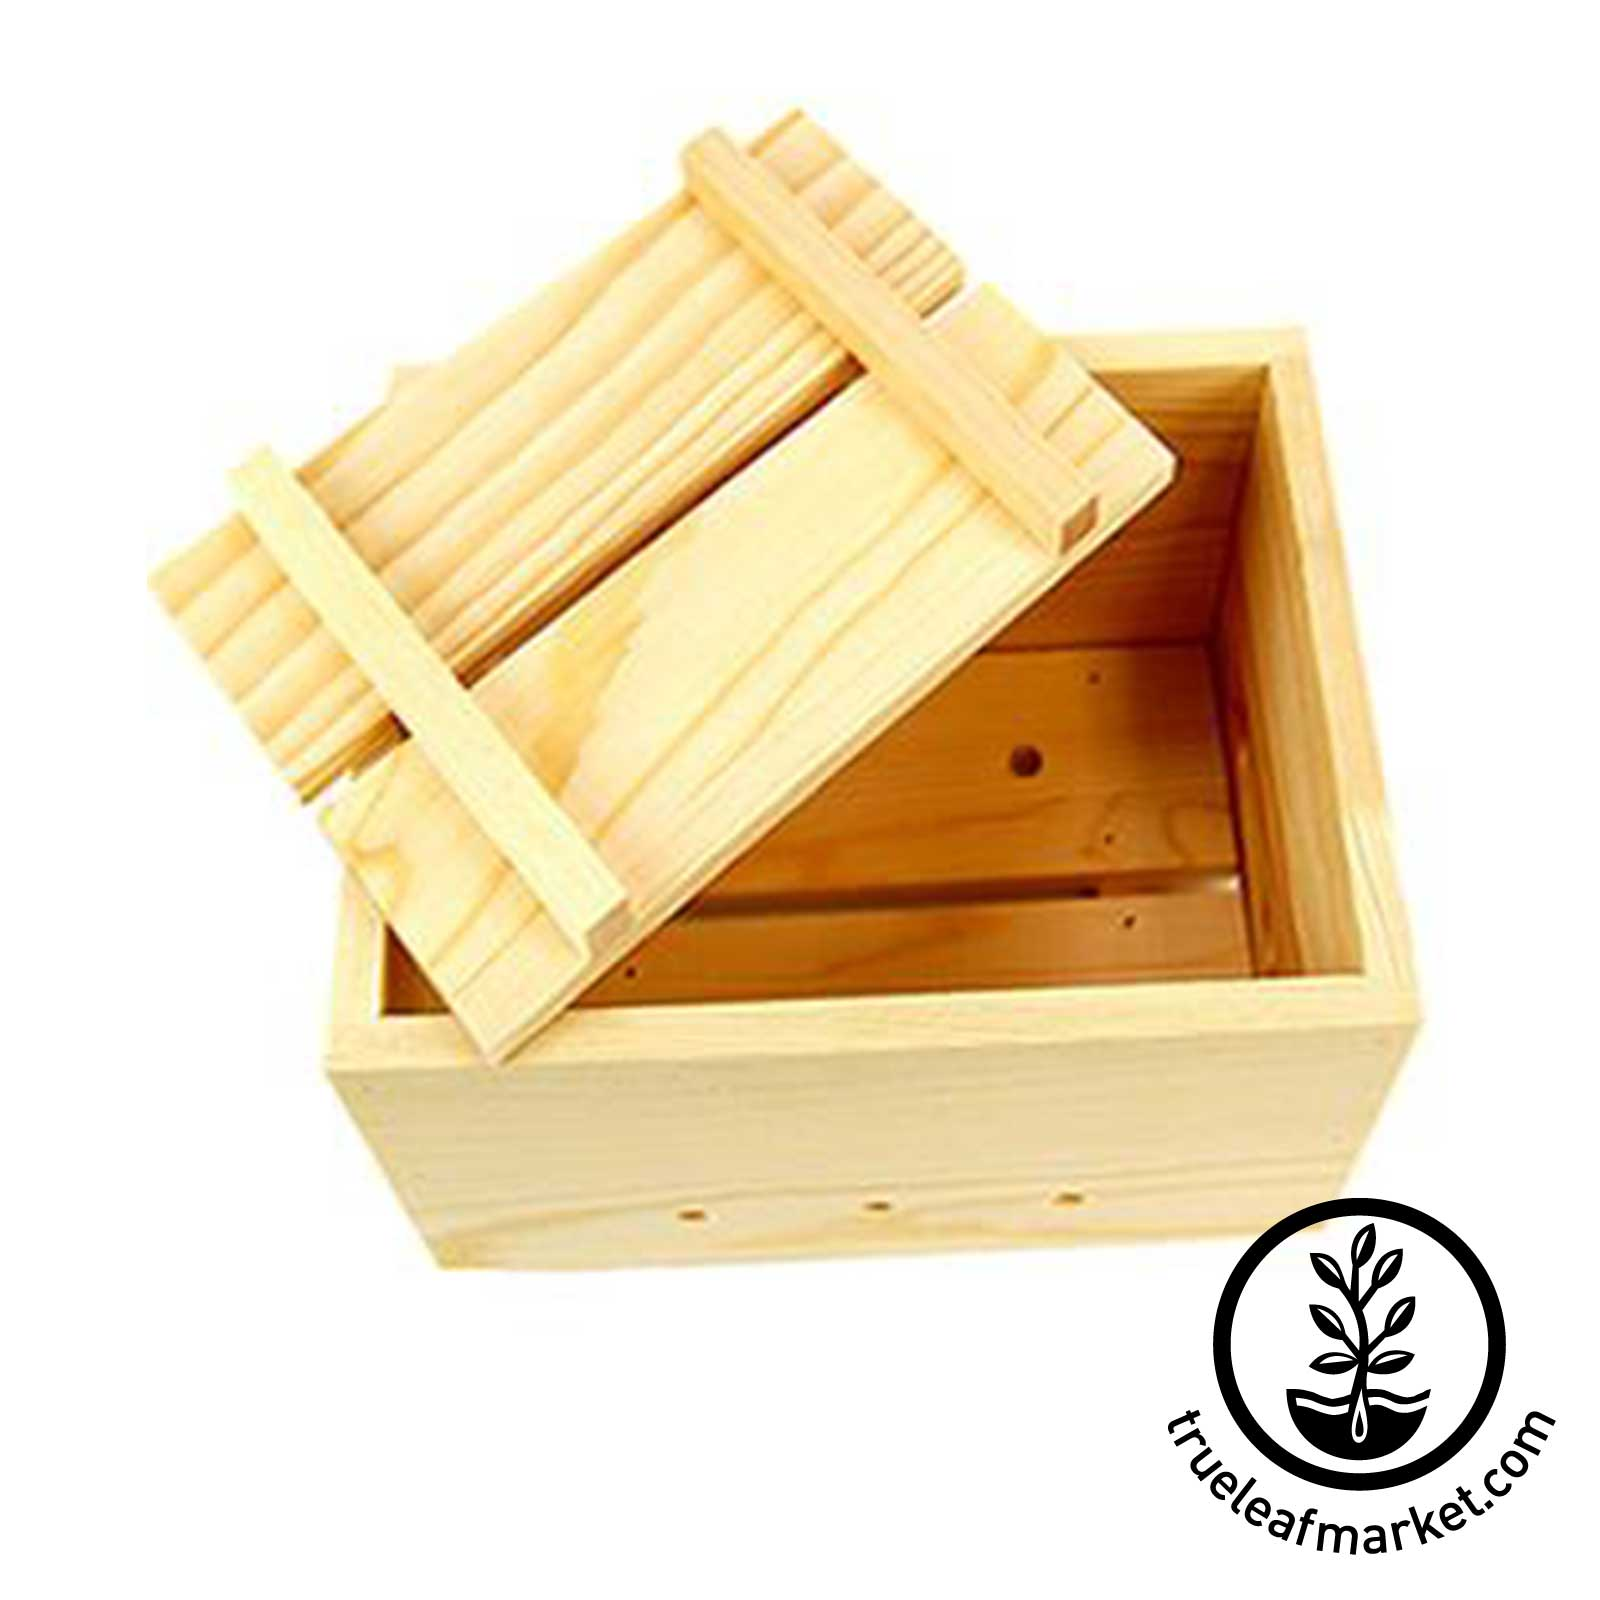 Wooden Tofu Press - Top View